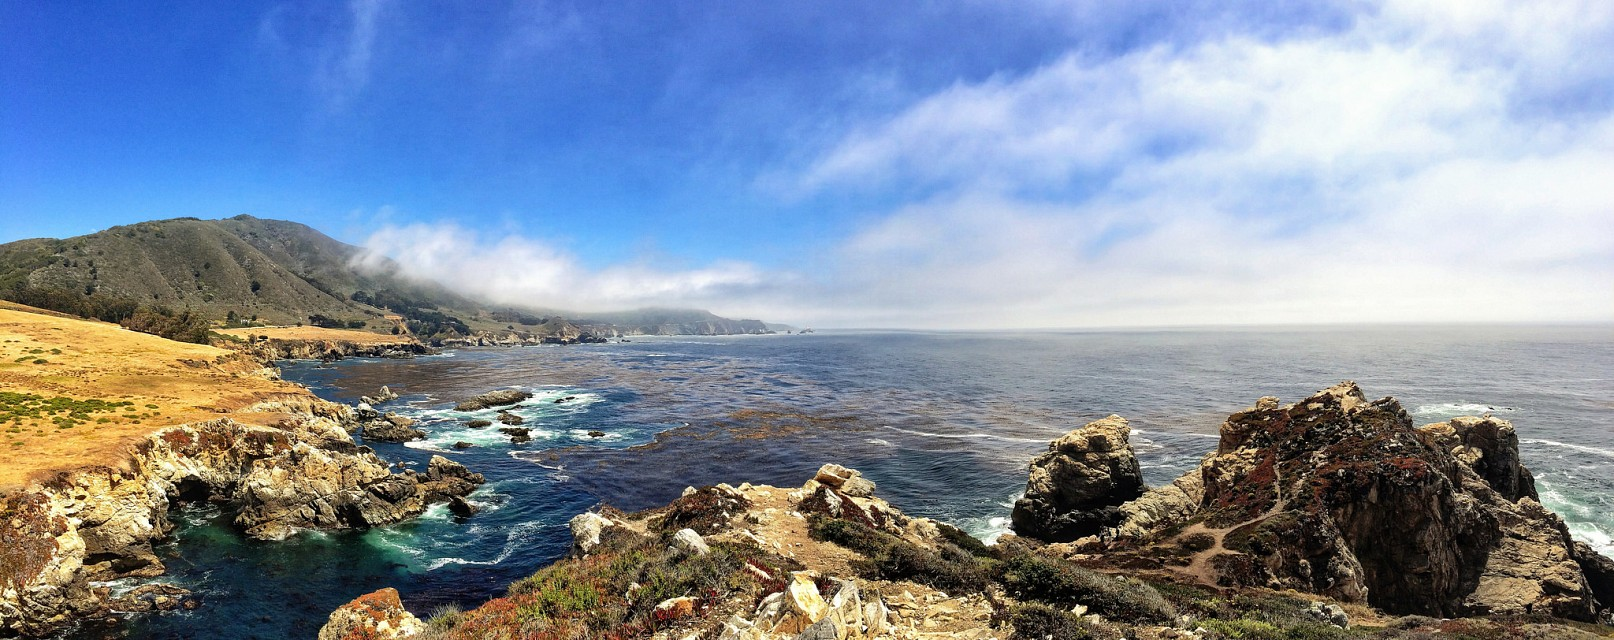 Quick iPhone pano from Big Sur, CA. - California